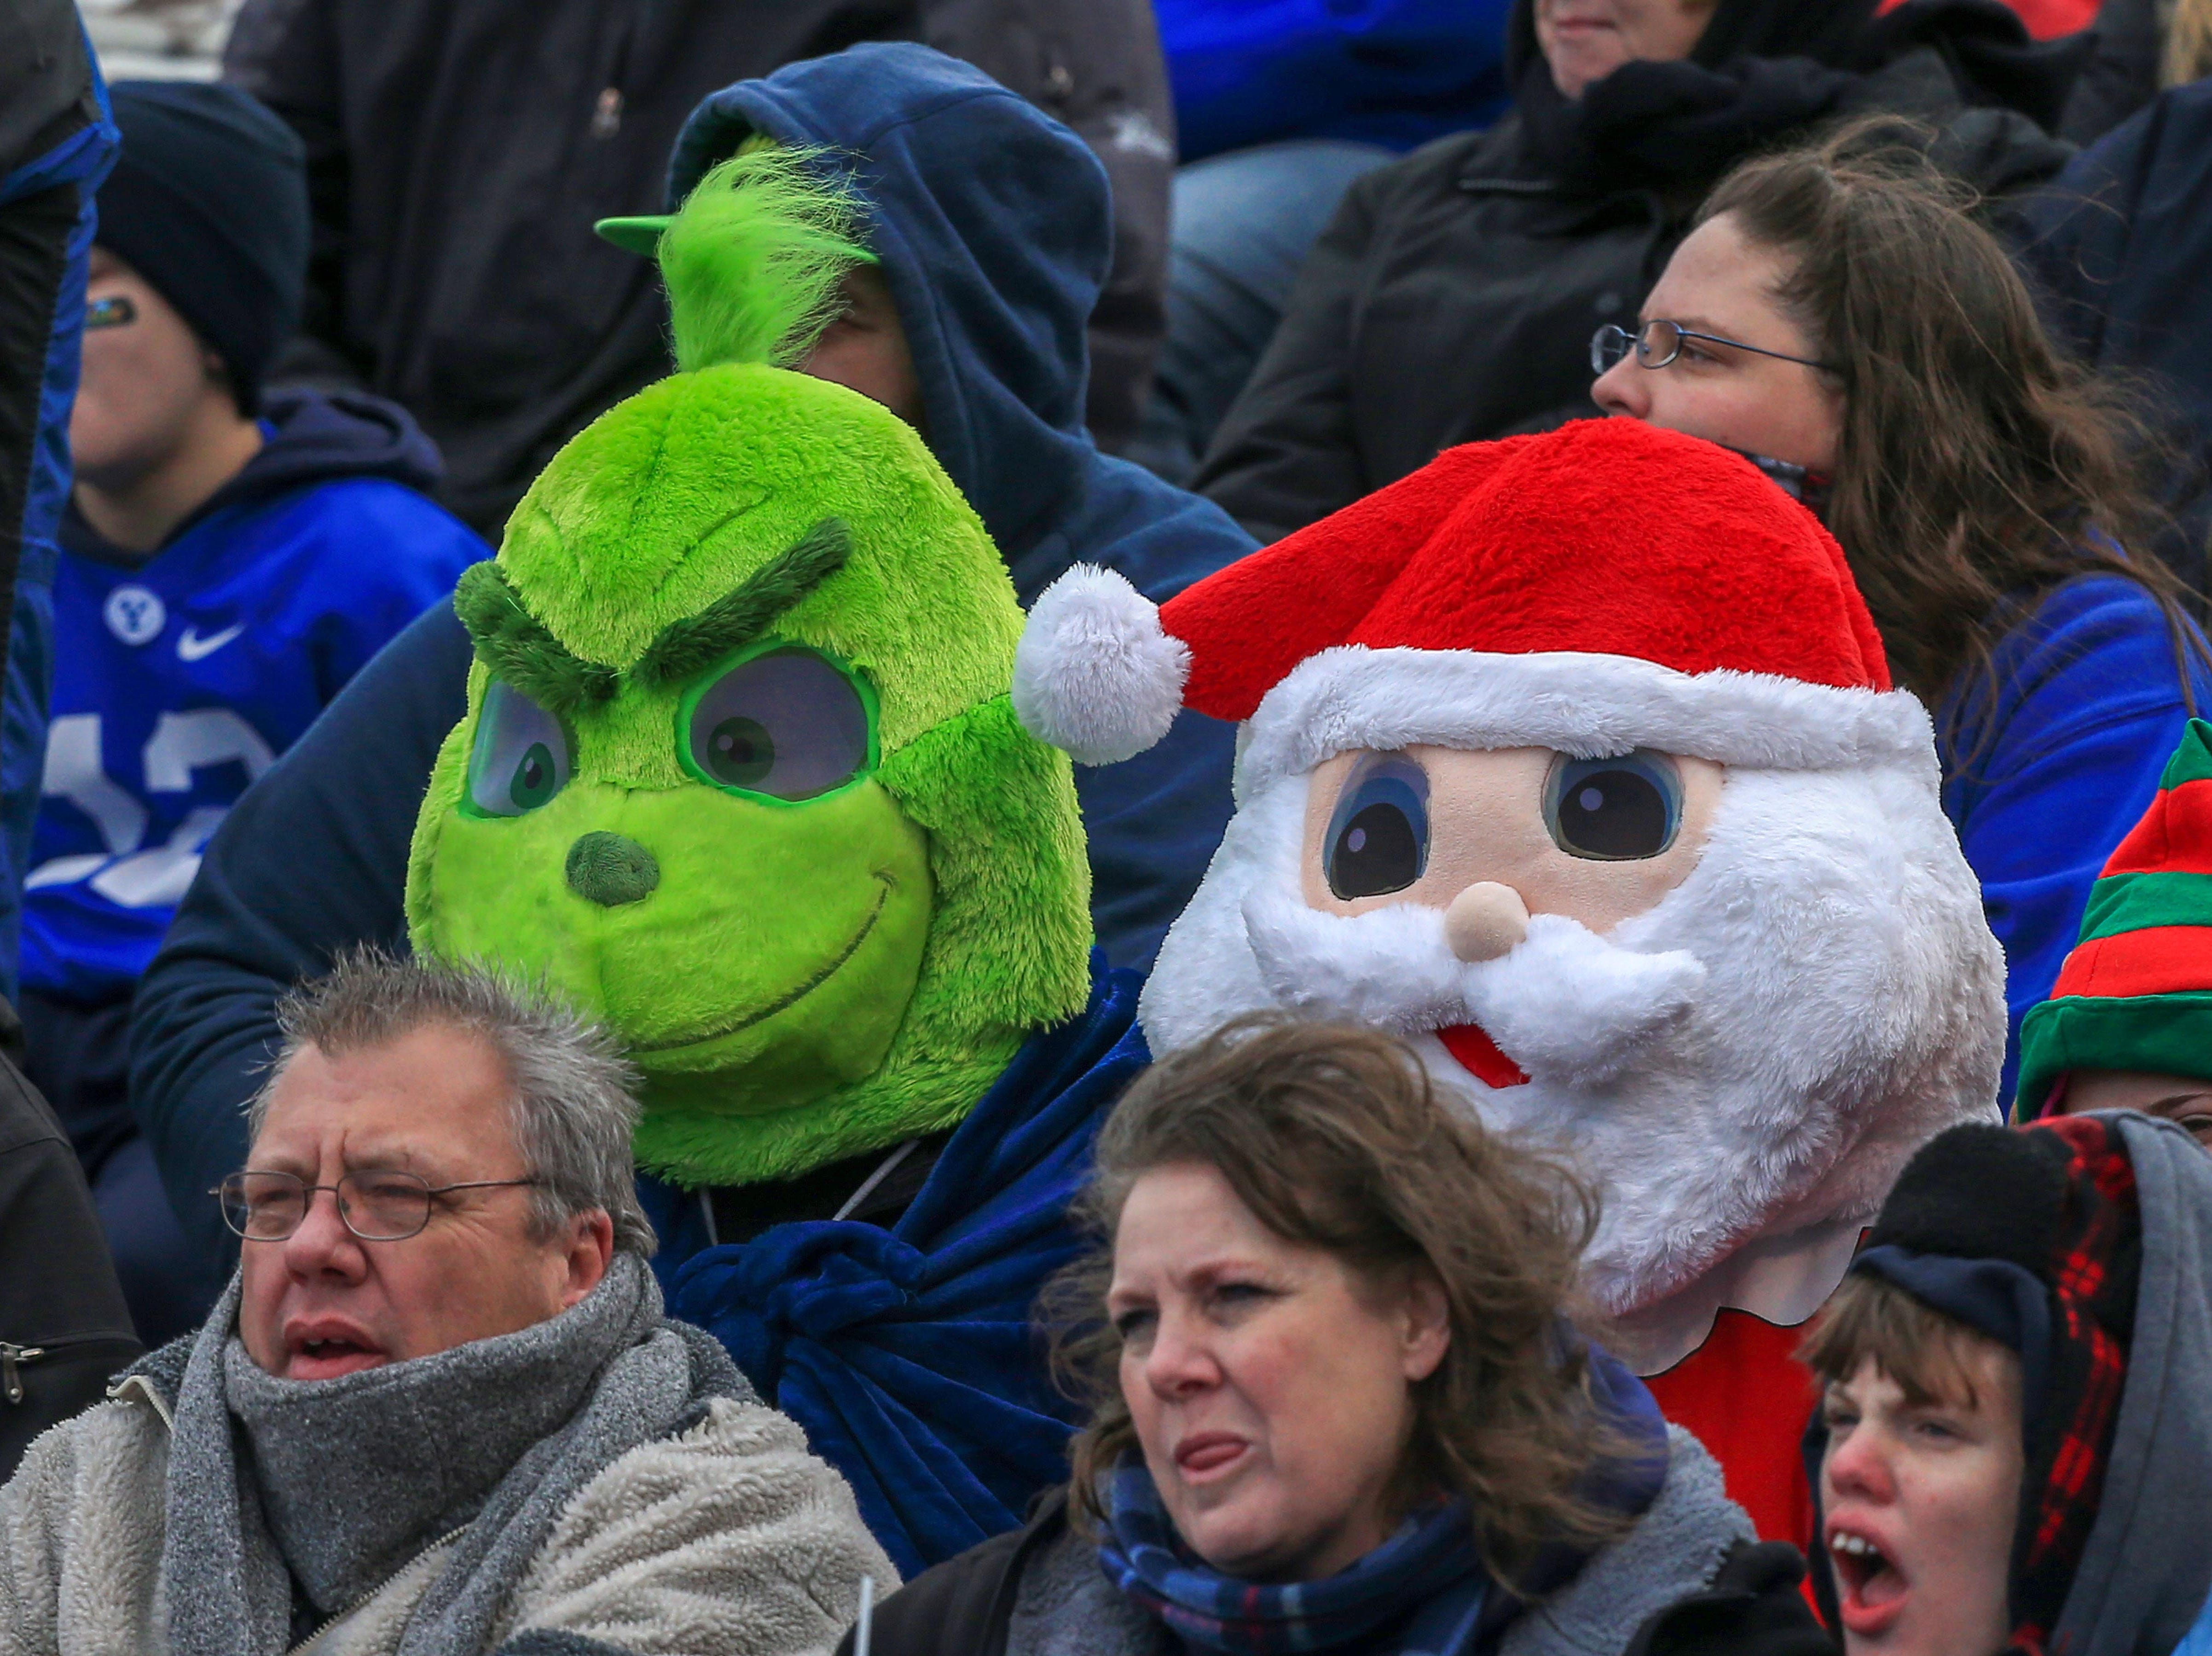 Dec 21, 2018; Boise, ID, United States; Fans dress up as the Grinch and Santa Claus during the first half  of play at the 2018 Potato Bowl between Western Michigan and BYU at Albertsons Stadium. Mandatory Credit: Brian Losness-USA TODAY Sports